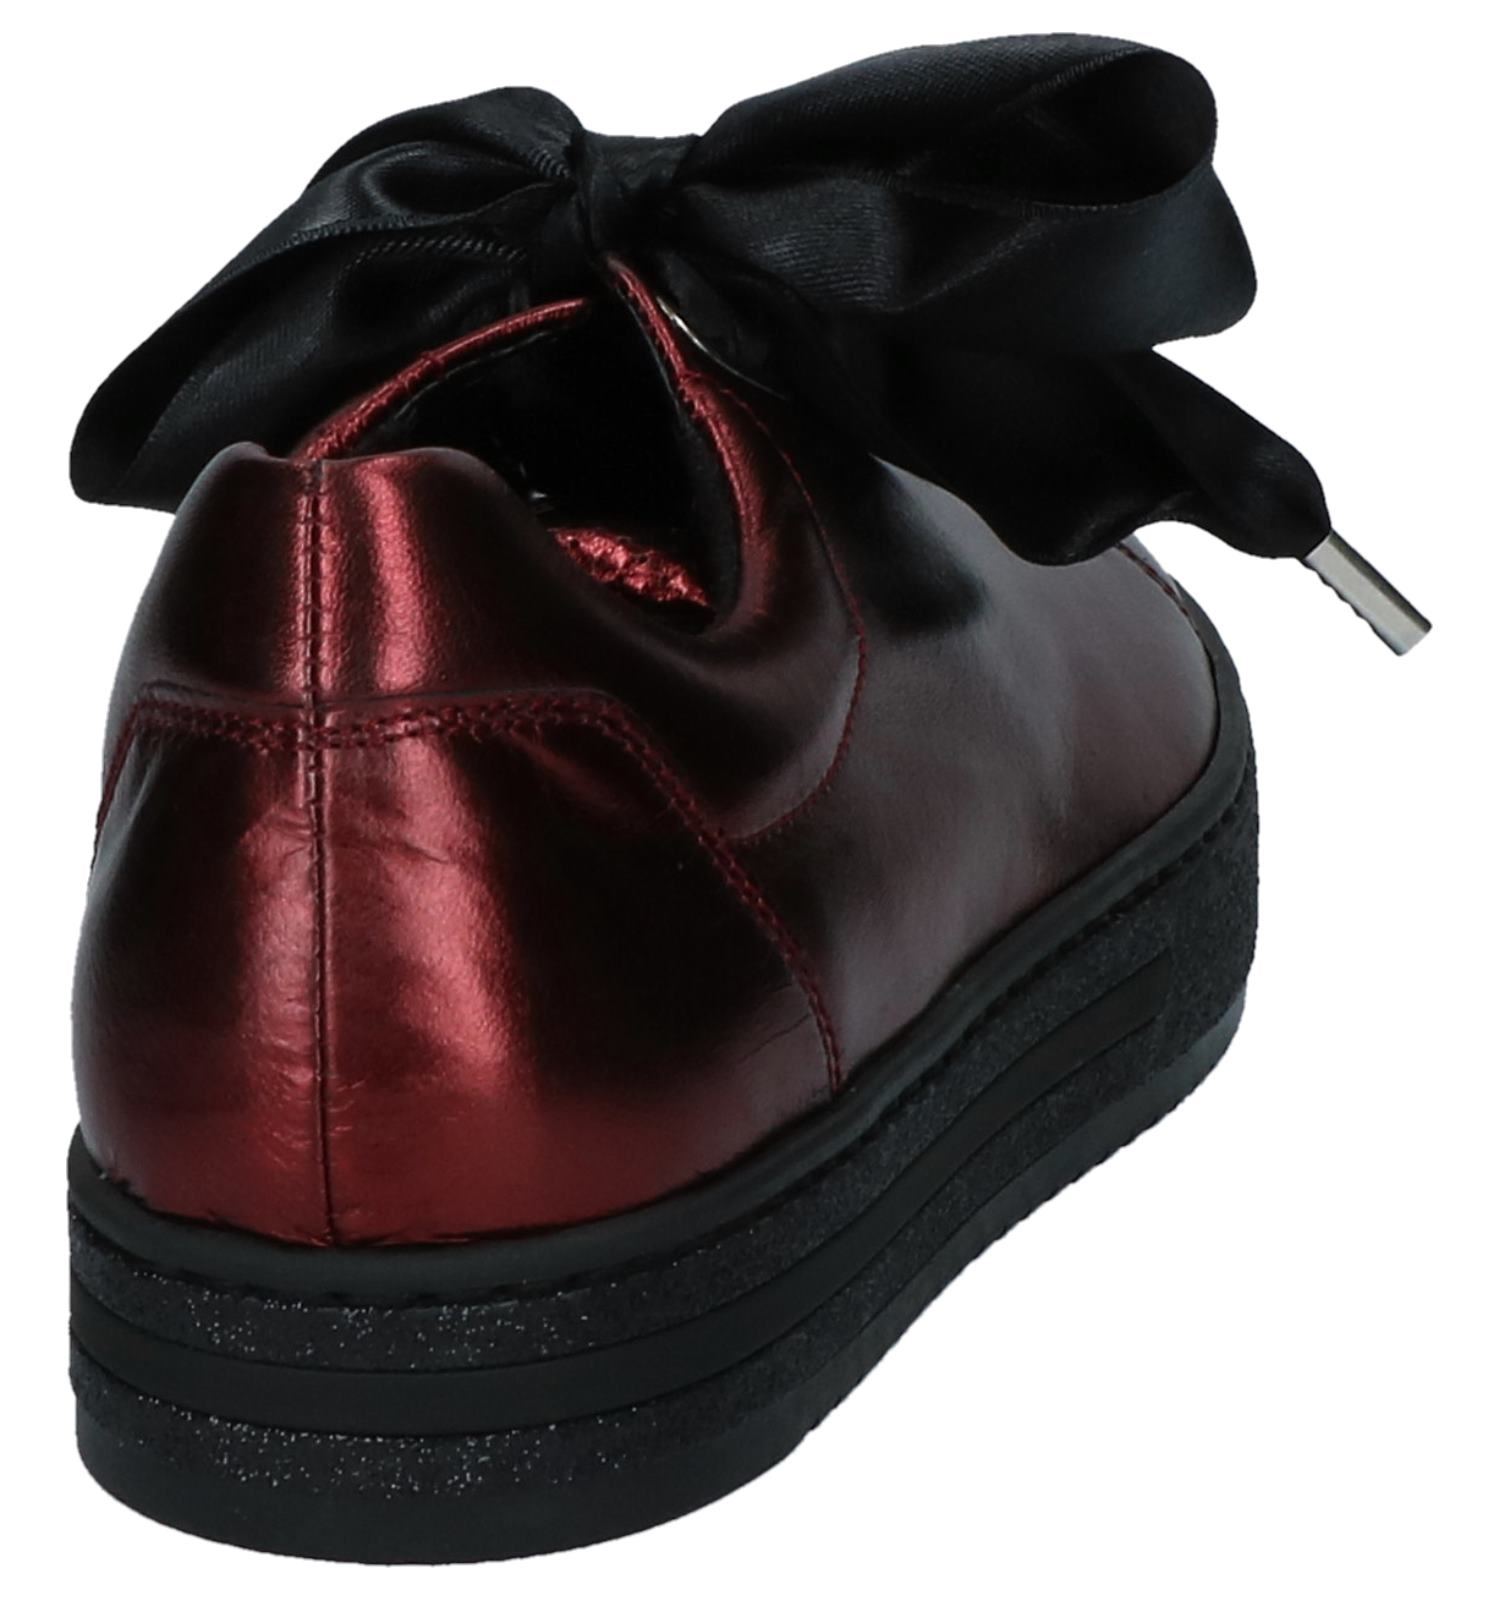 Bordeaux Sneakers Fitting be Geklede Gabor Torfs Best Metallic qgvqF